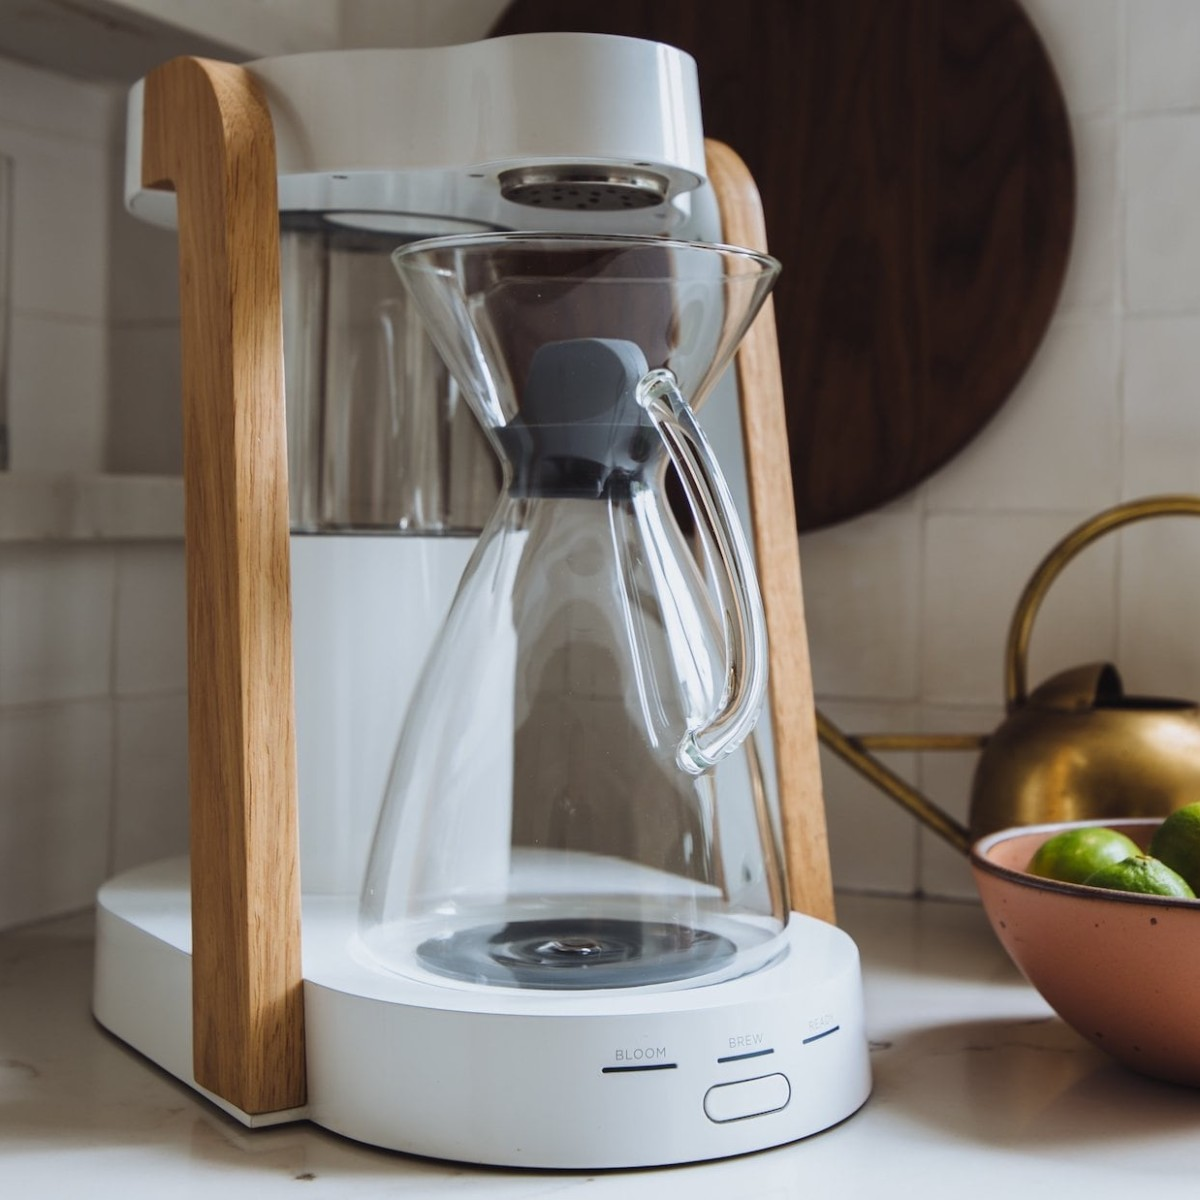 Ratio Eight Coffee Brewer makes an incredible cup of joe every time